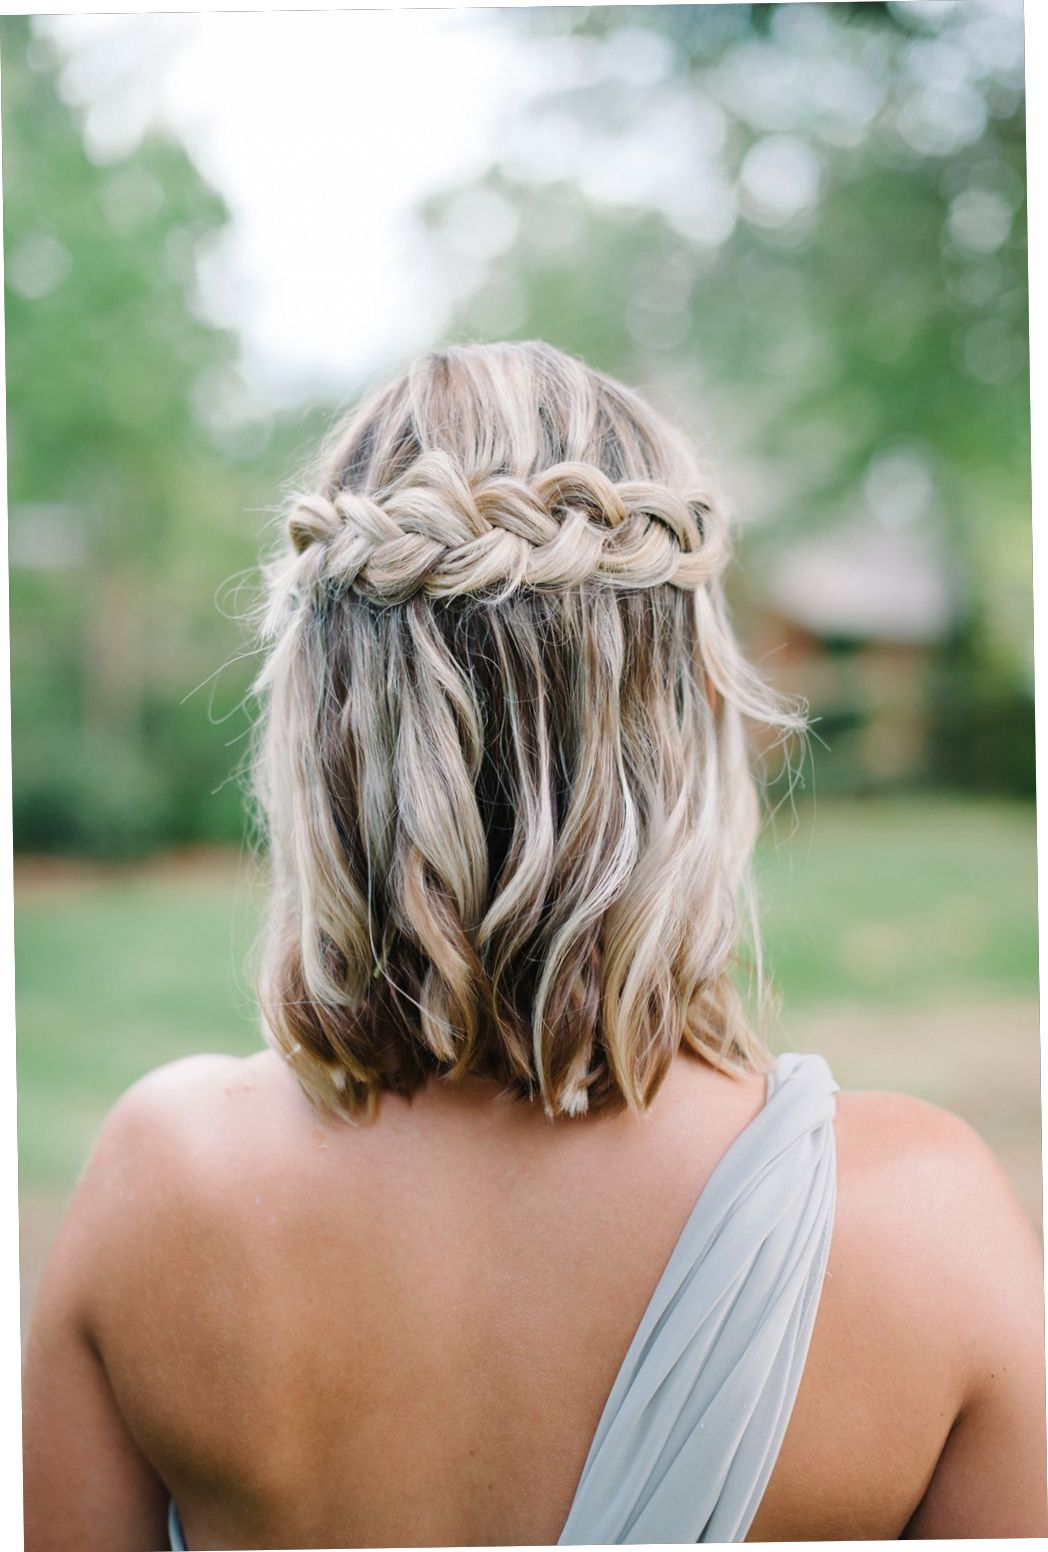 Simple Wedding Hairstyles For Short Hair Short Hair Styles Hair Styles Medium Length Hair Styles